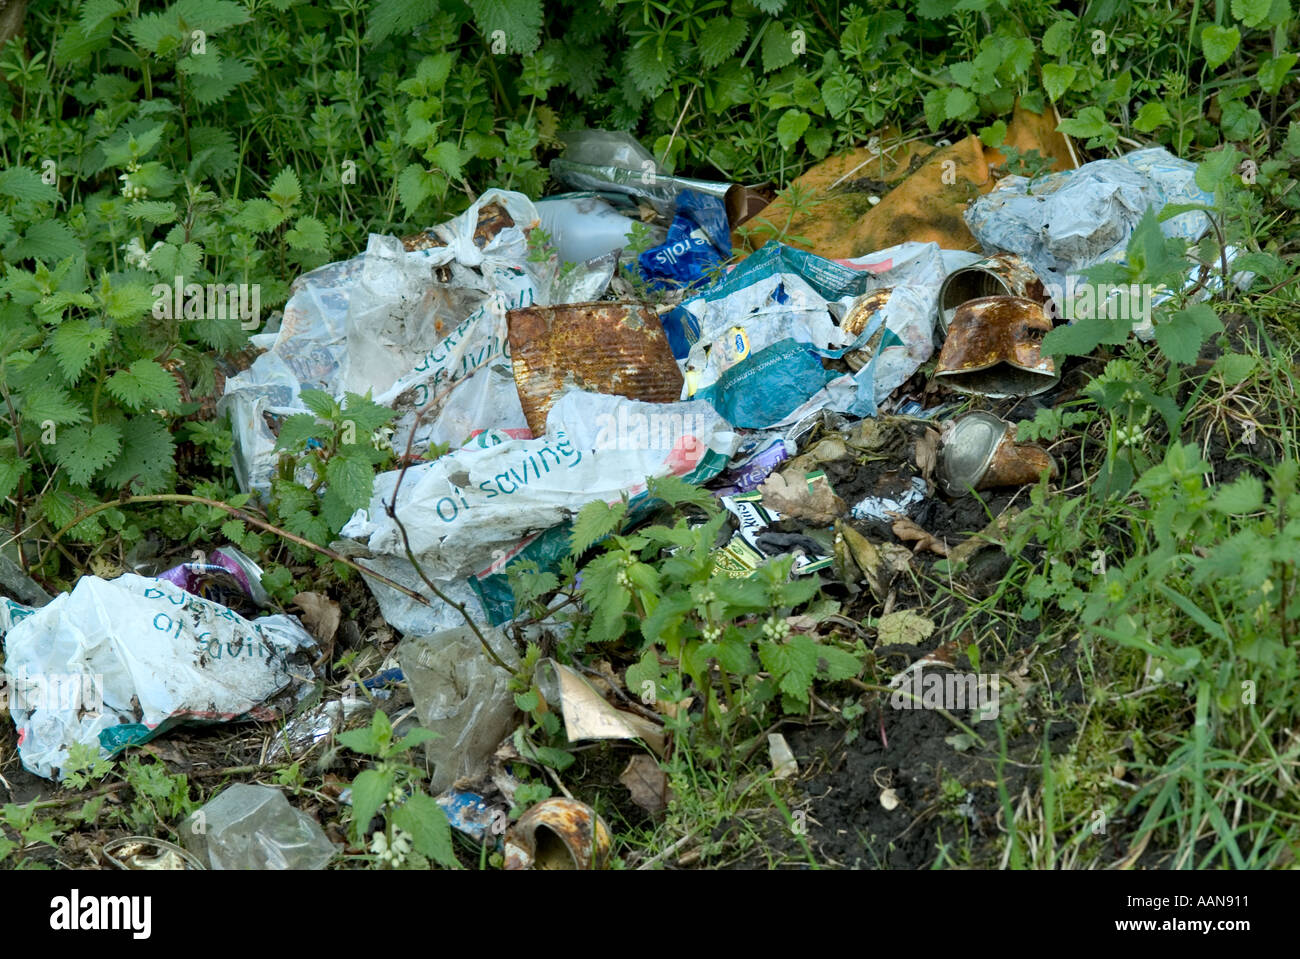 fly tipping waste environment counryside refuse dirt mess throw away grass countryside rubbish junk scrap trash dross garbage l - Stock Image